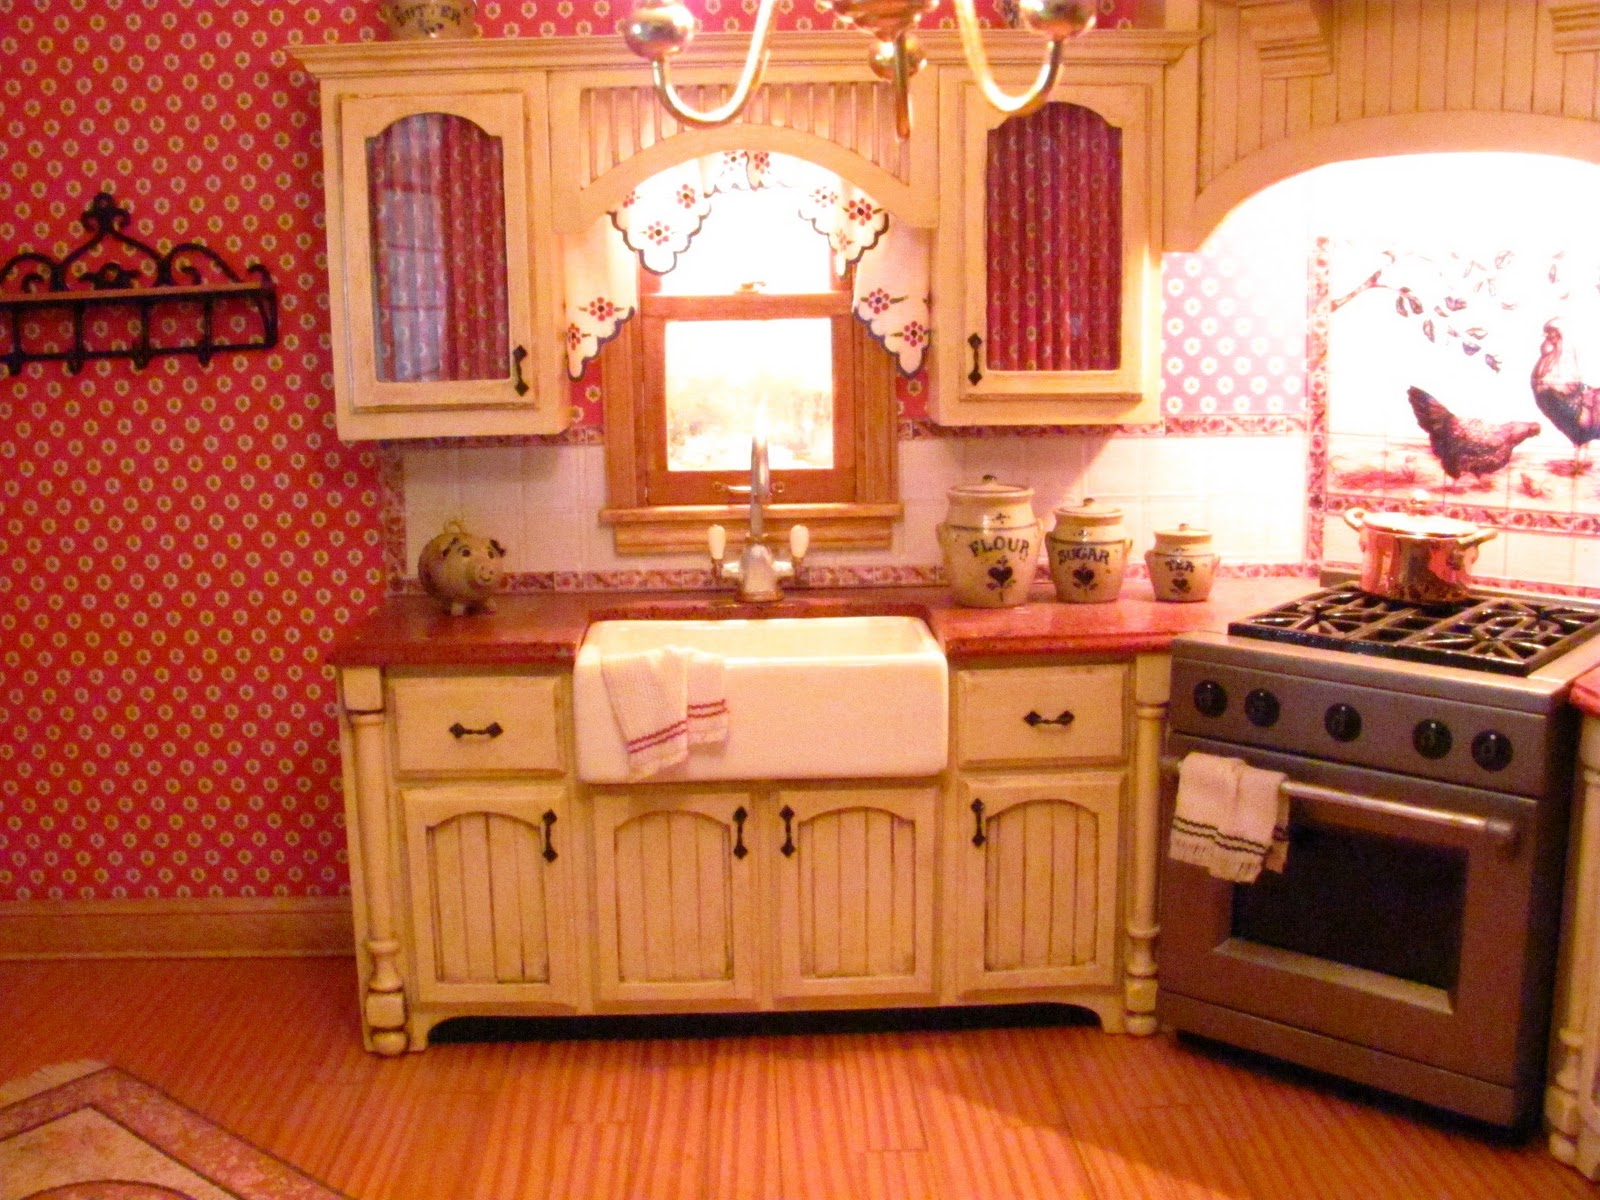 Kitchen Dollhouse Furniture Dollhouse Miniature Furniture Tutorials 1 Inch Minis Kitchen